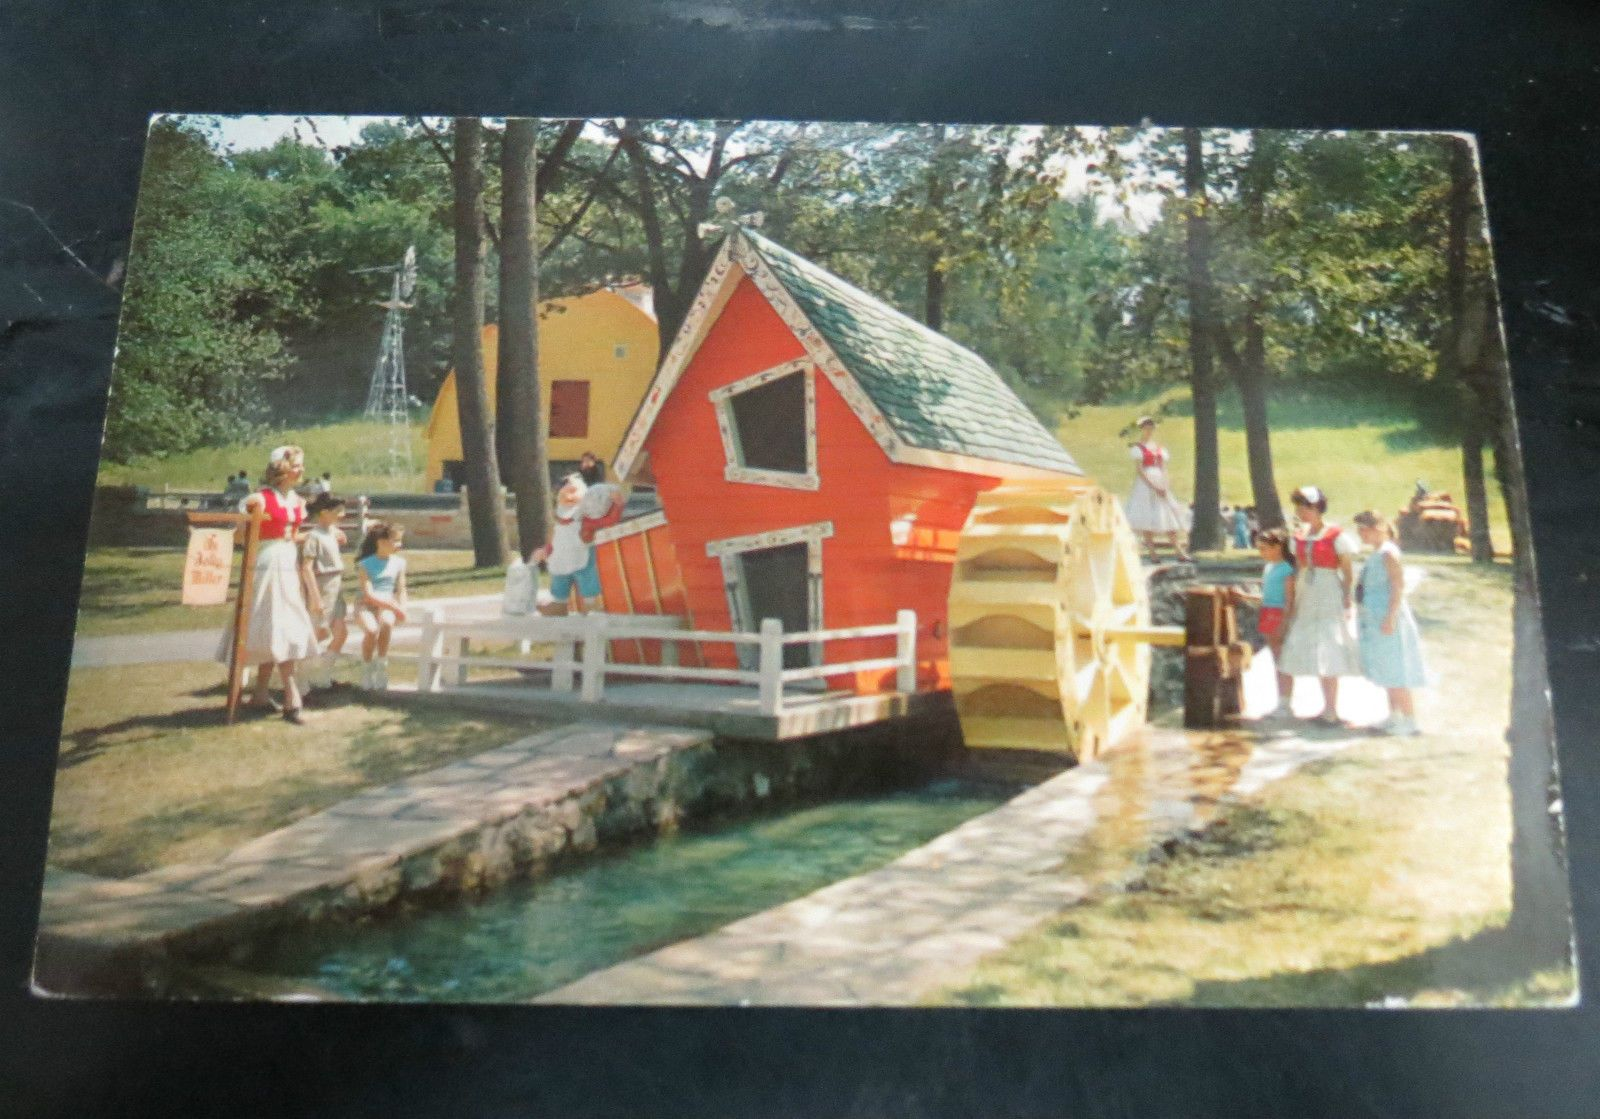 London Ontario Storybook Gardens 1960s Storybook Gardens London History Canada Images